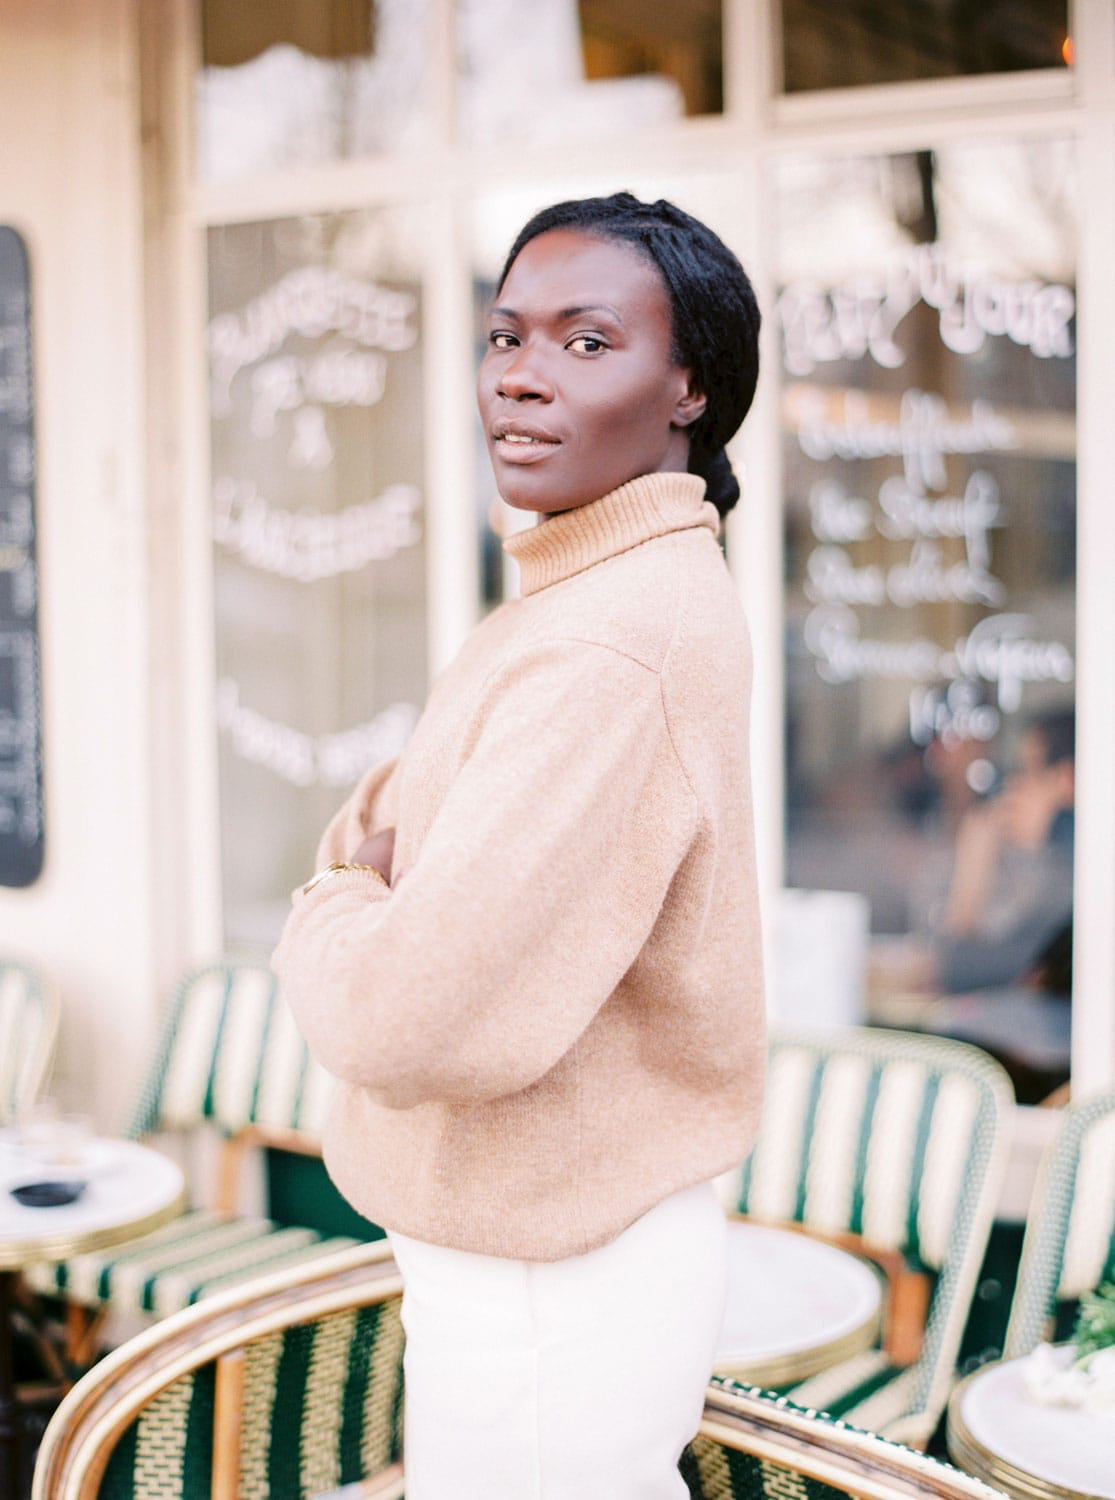 Thinking of moving to Paris or just looking for insider tips to maybe the best flea markets, book stores or the perfect place for a picnic? Yanique of My Parisian Life will help you